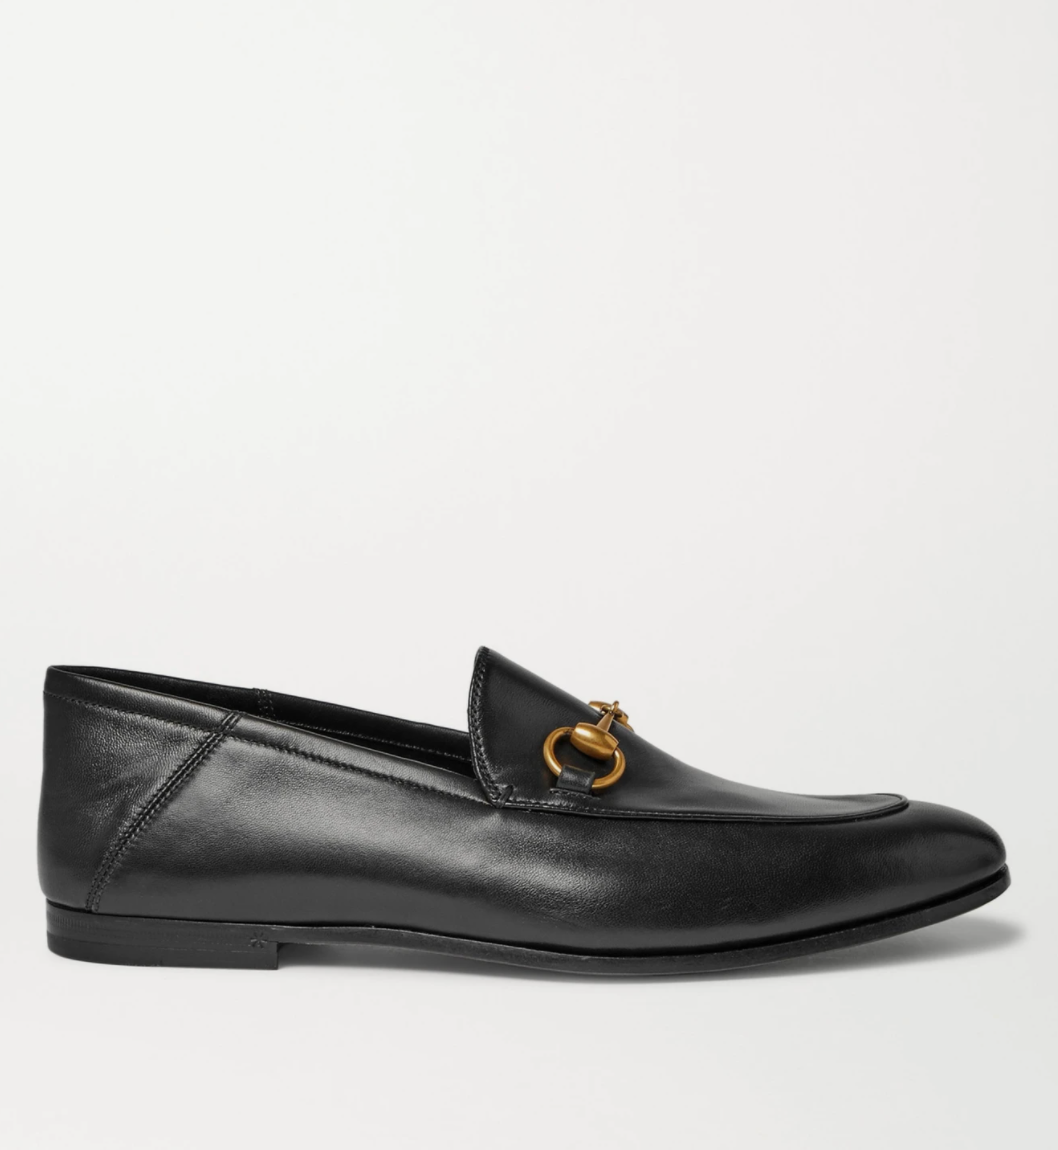 Brixton Horsebit Collapsible-Heel Leather Loafers